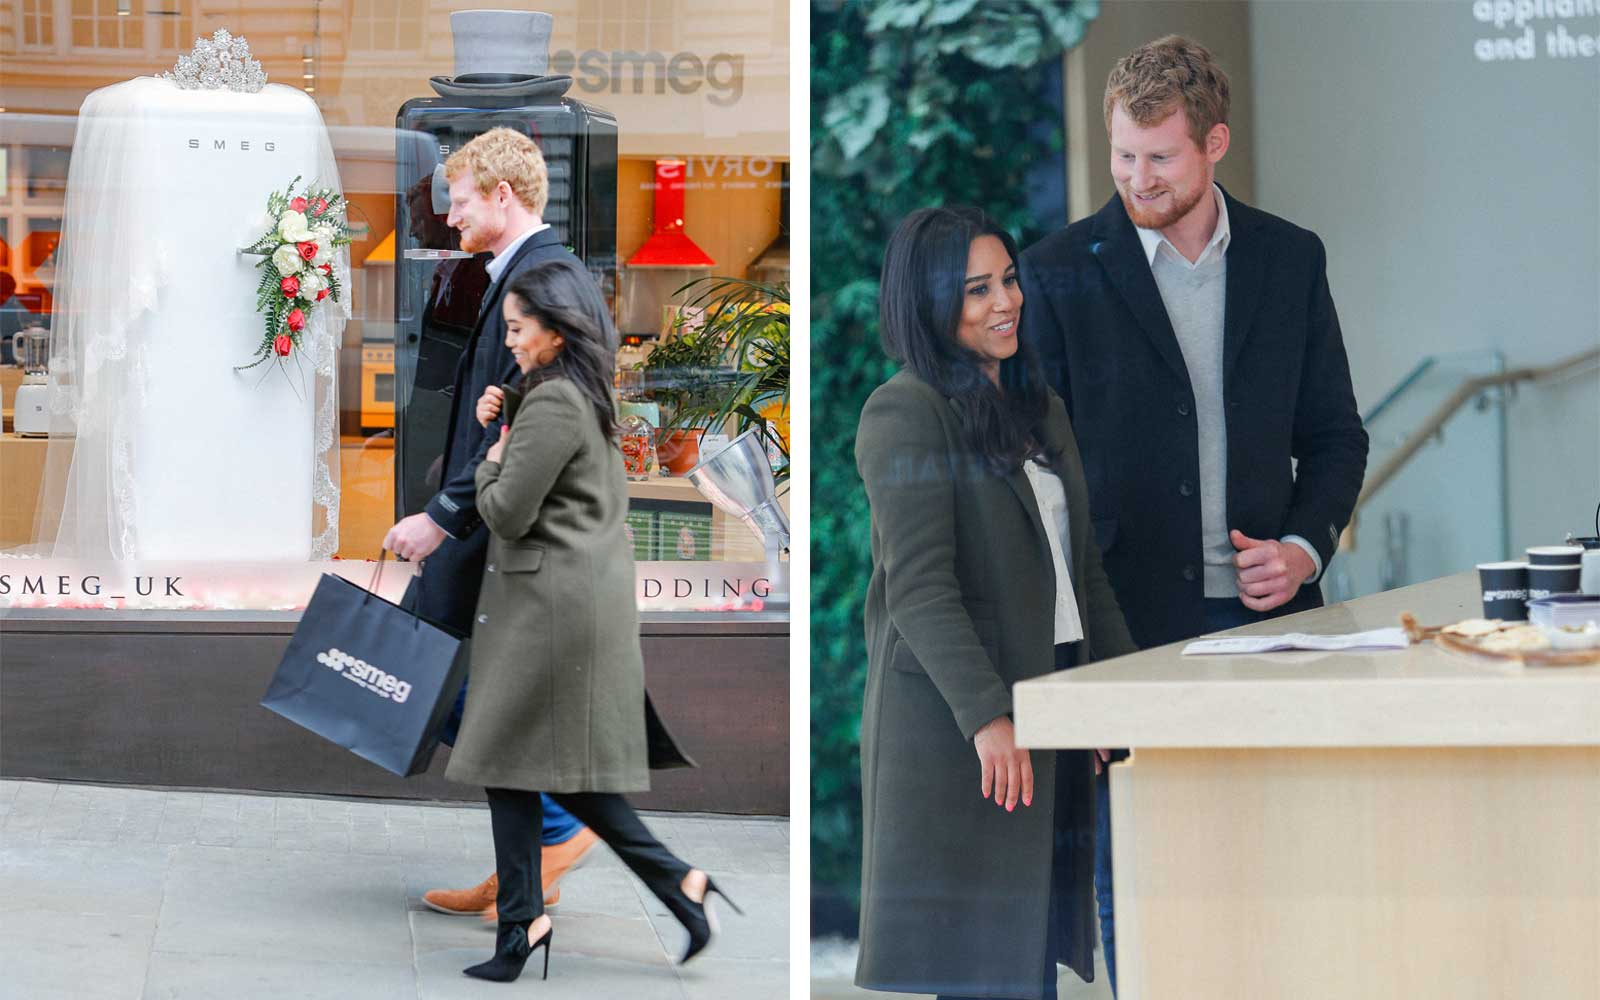 The Smeg London Store Enjoys A 'Royal&#x27 Visit As Prince Harry And Meghan Markle Lookalikes Are Spotted Shopping For Wedding Gifts